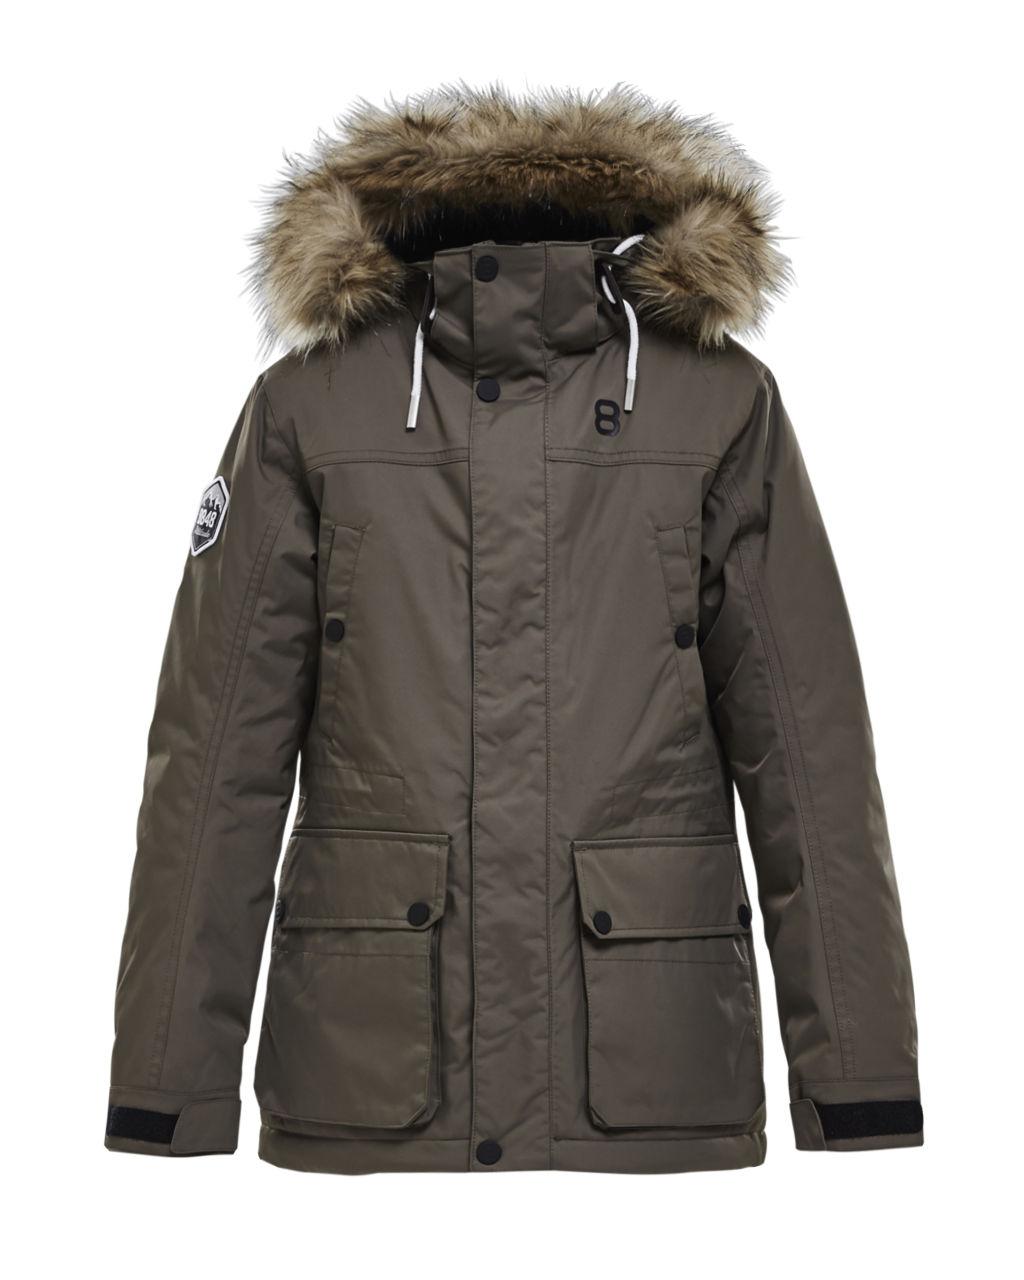 8848 Altitude Monitor 17 Parka Jr